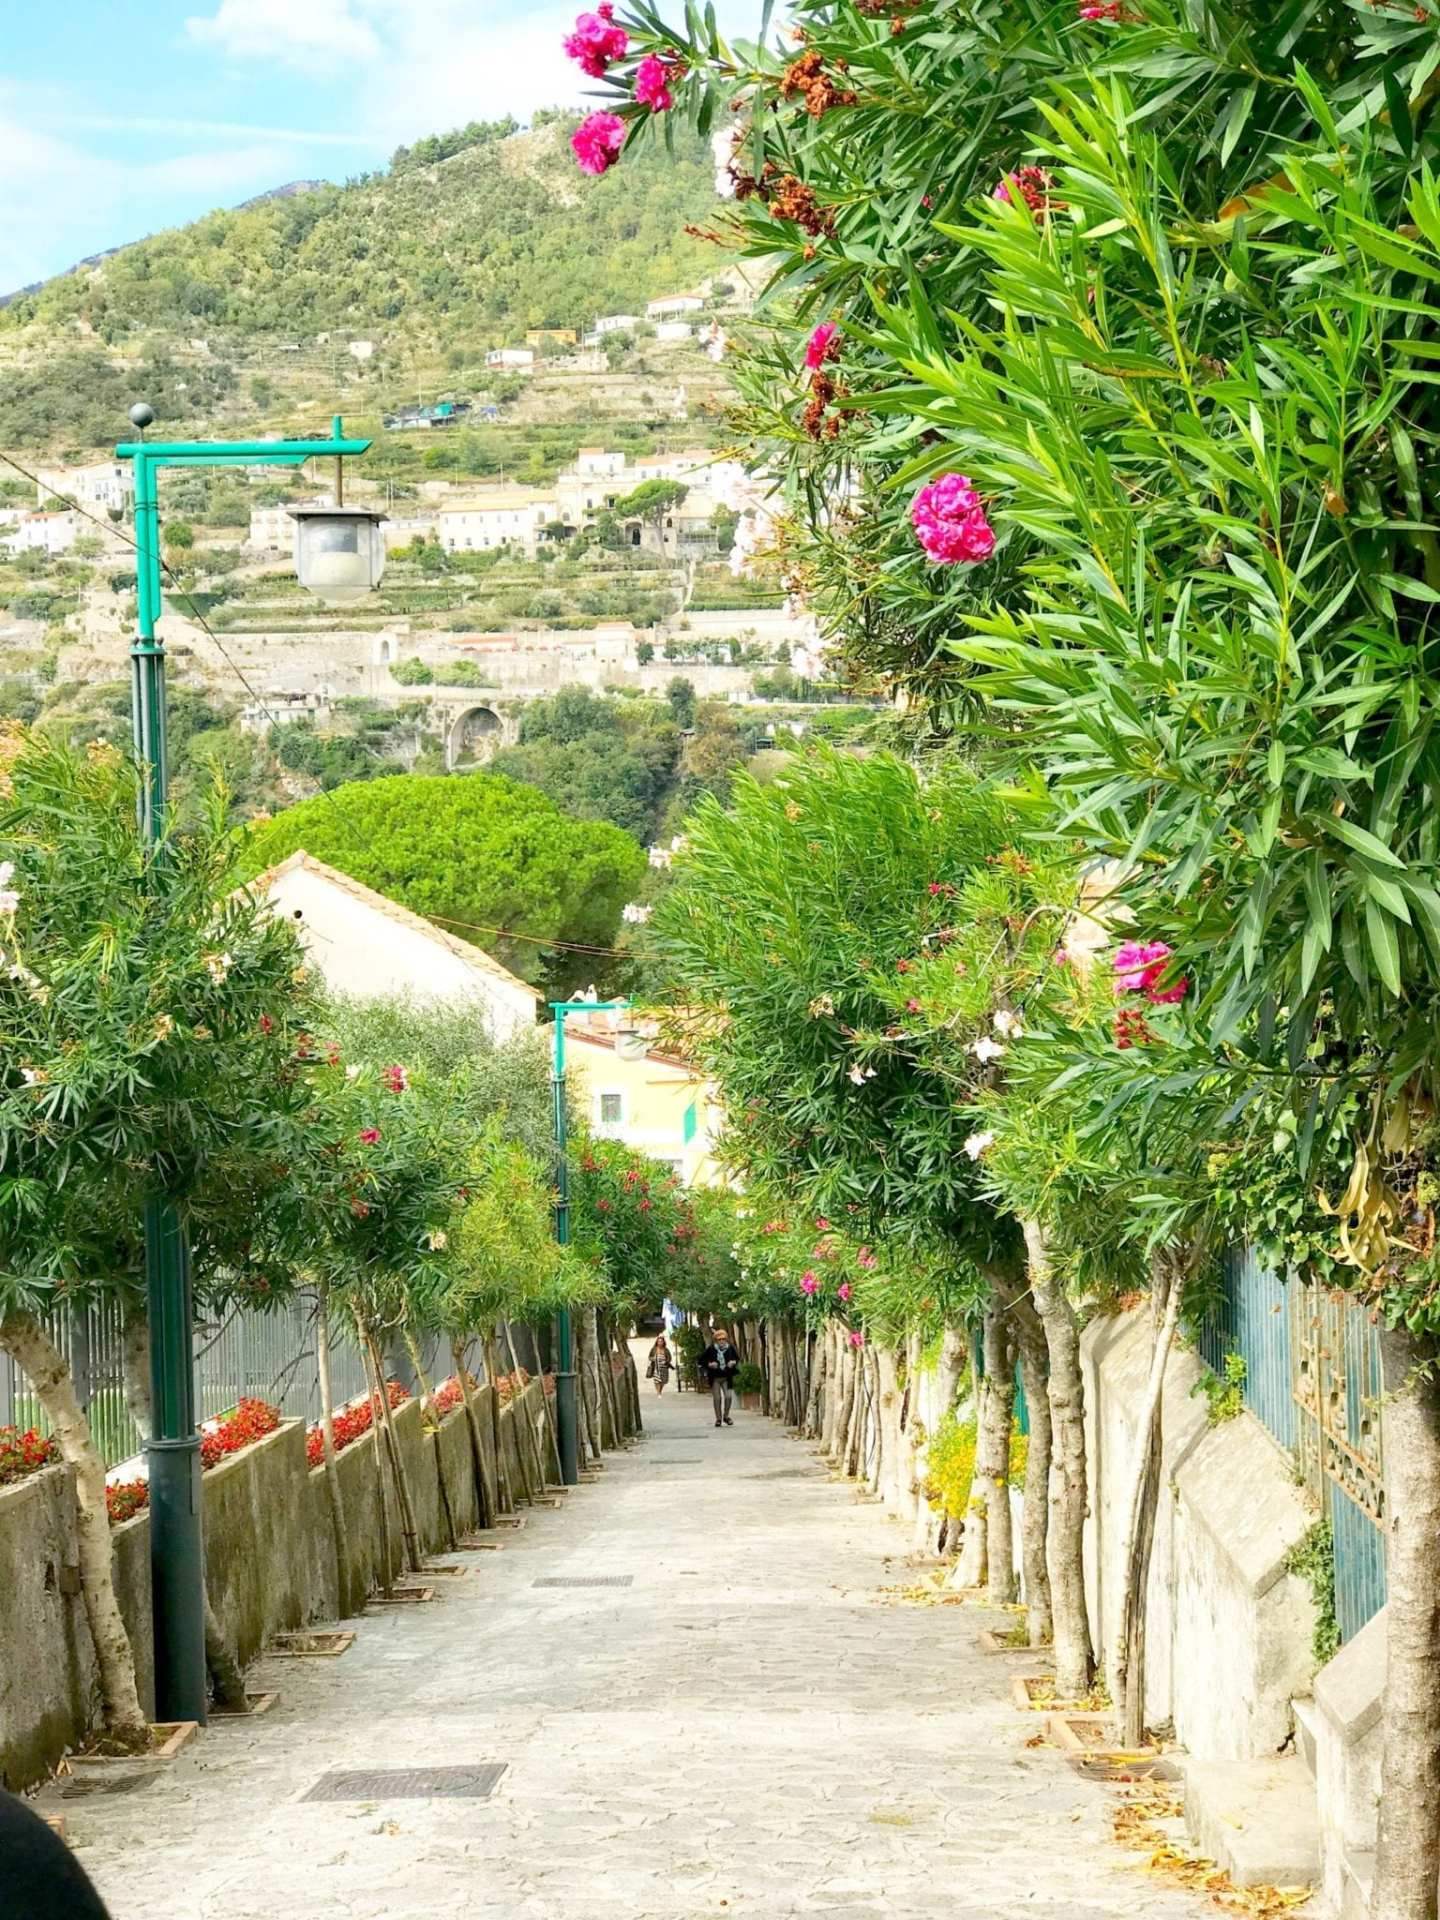 Advice for planning a trip to Ravello.